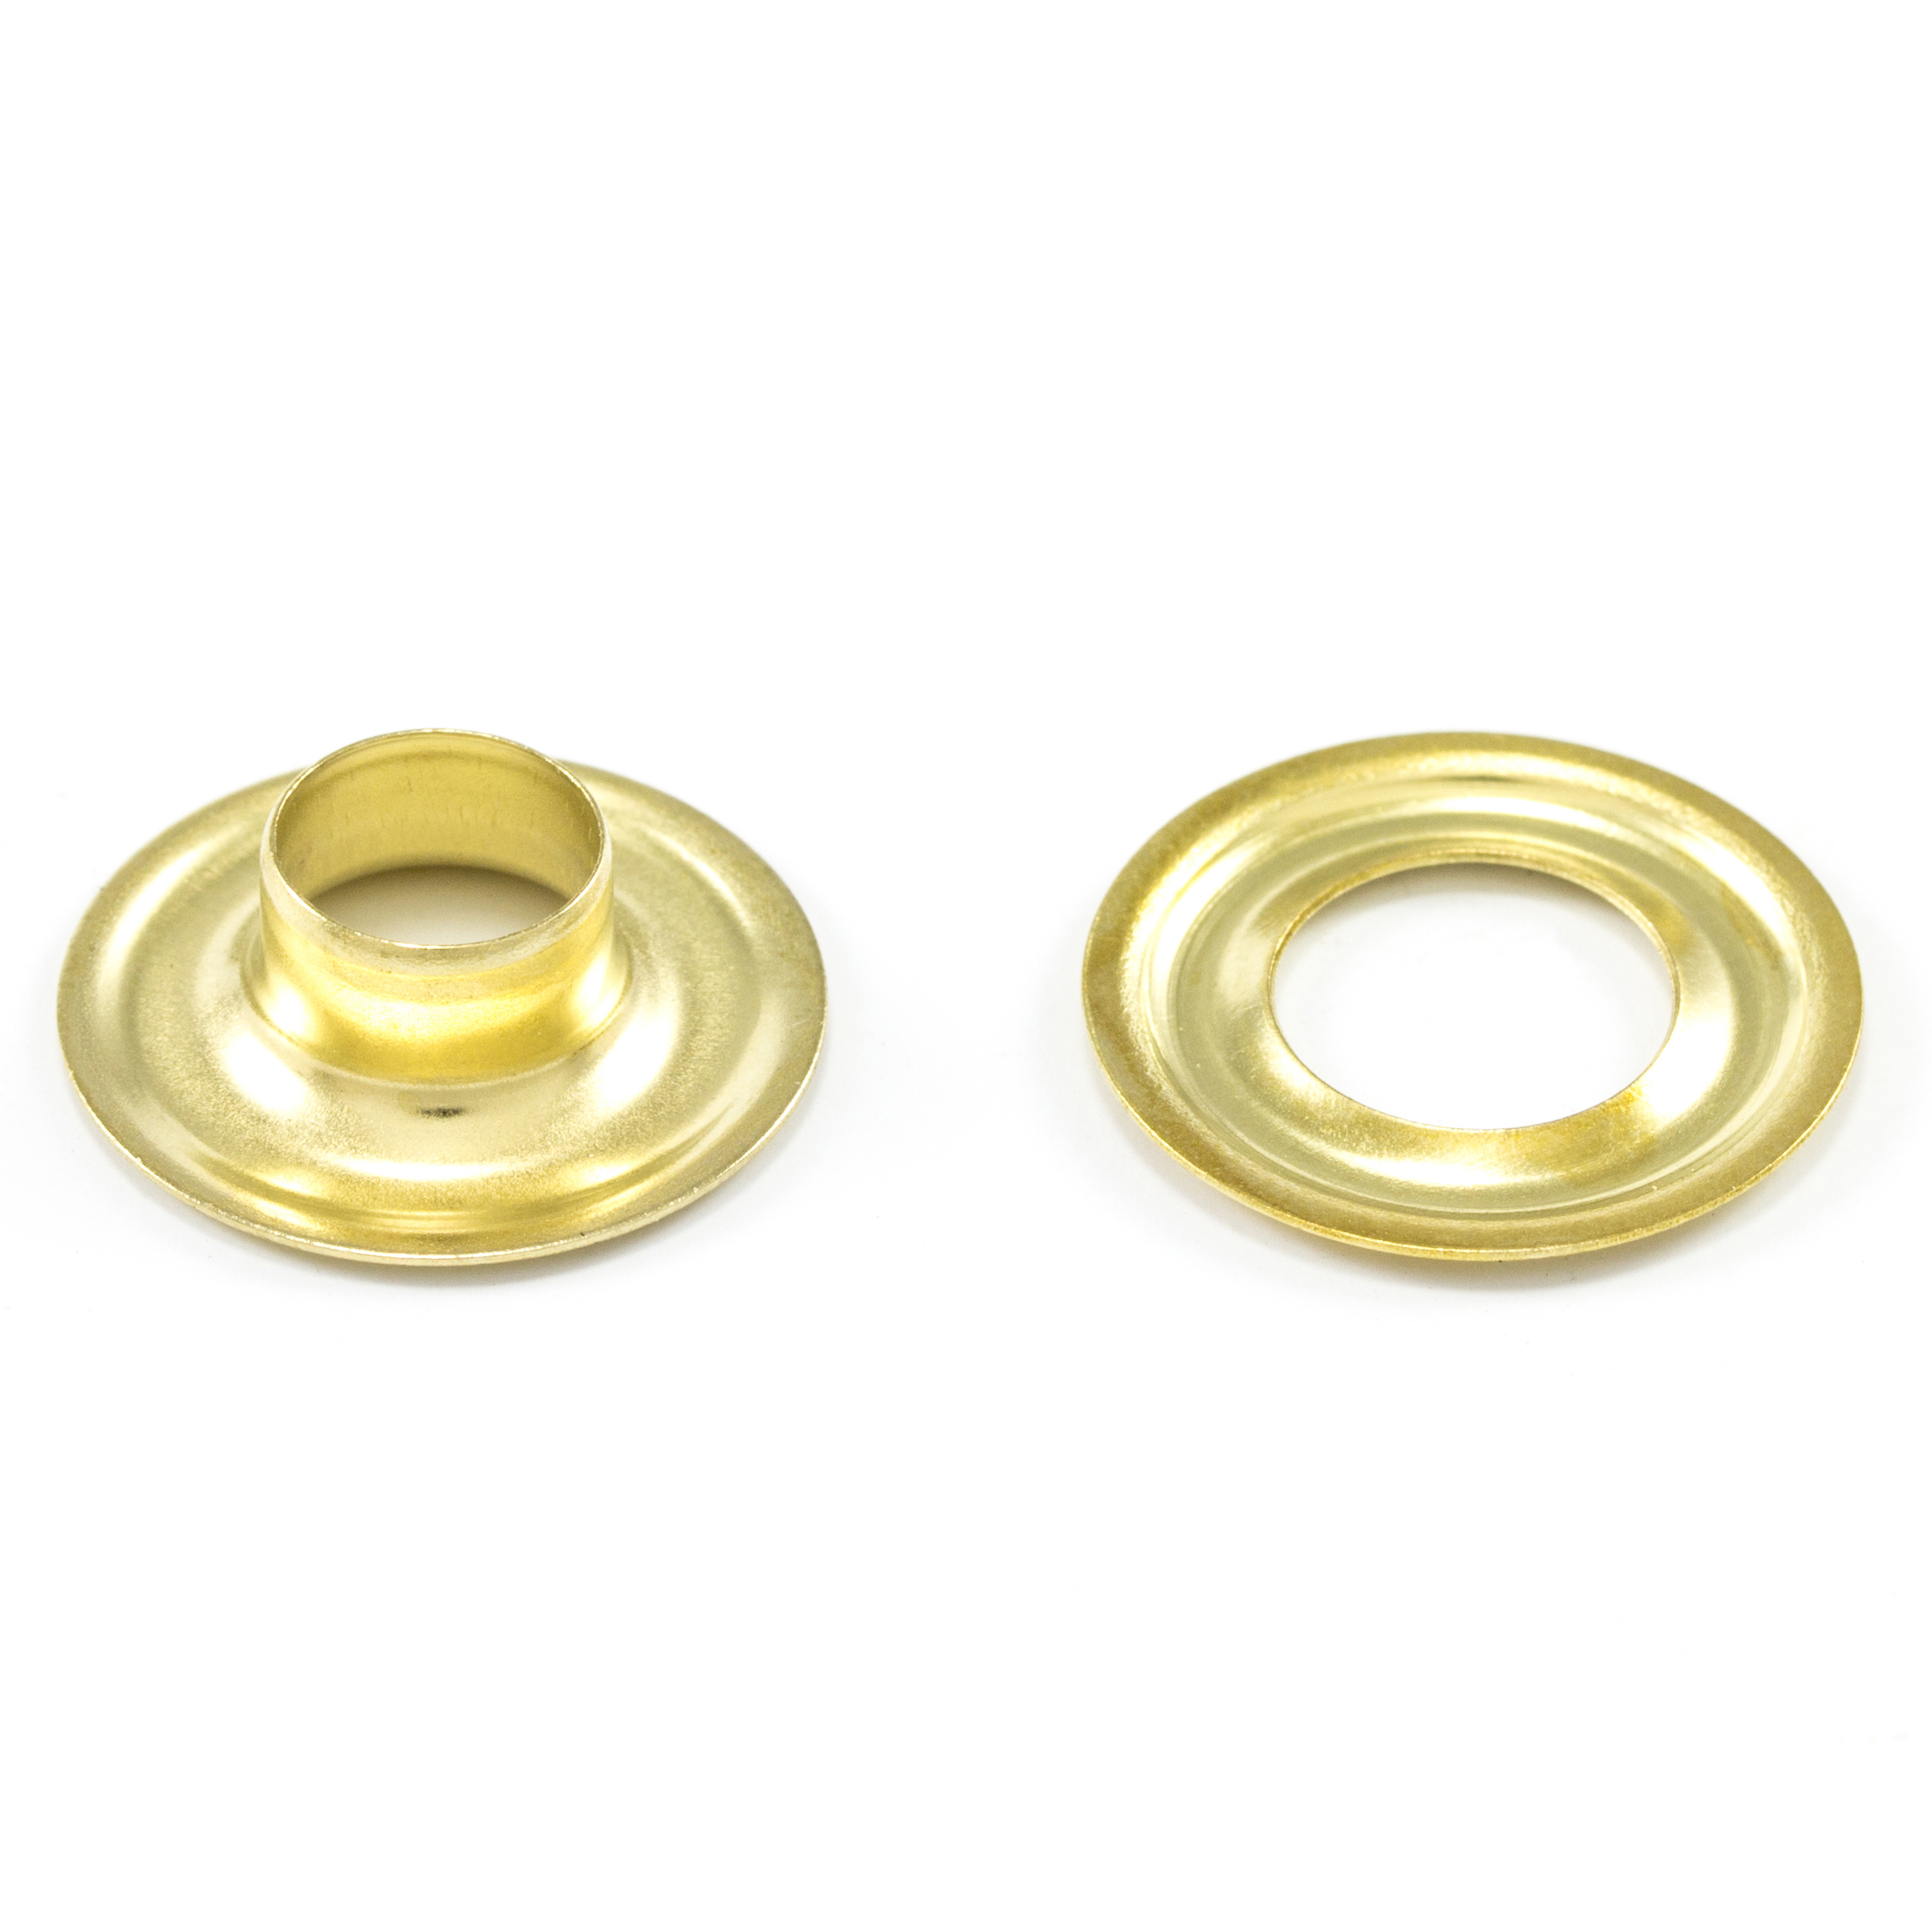 DOT Grommet with Plain Washer #1 Brass 9/32